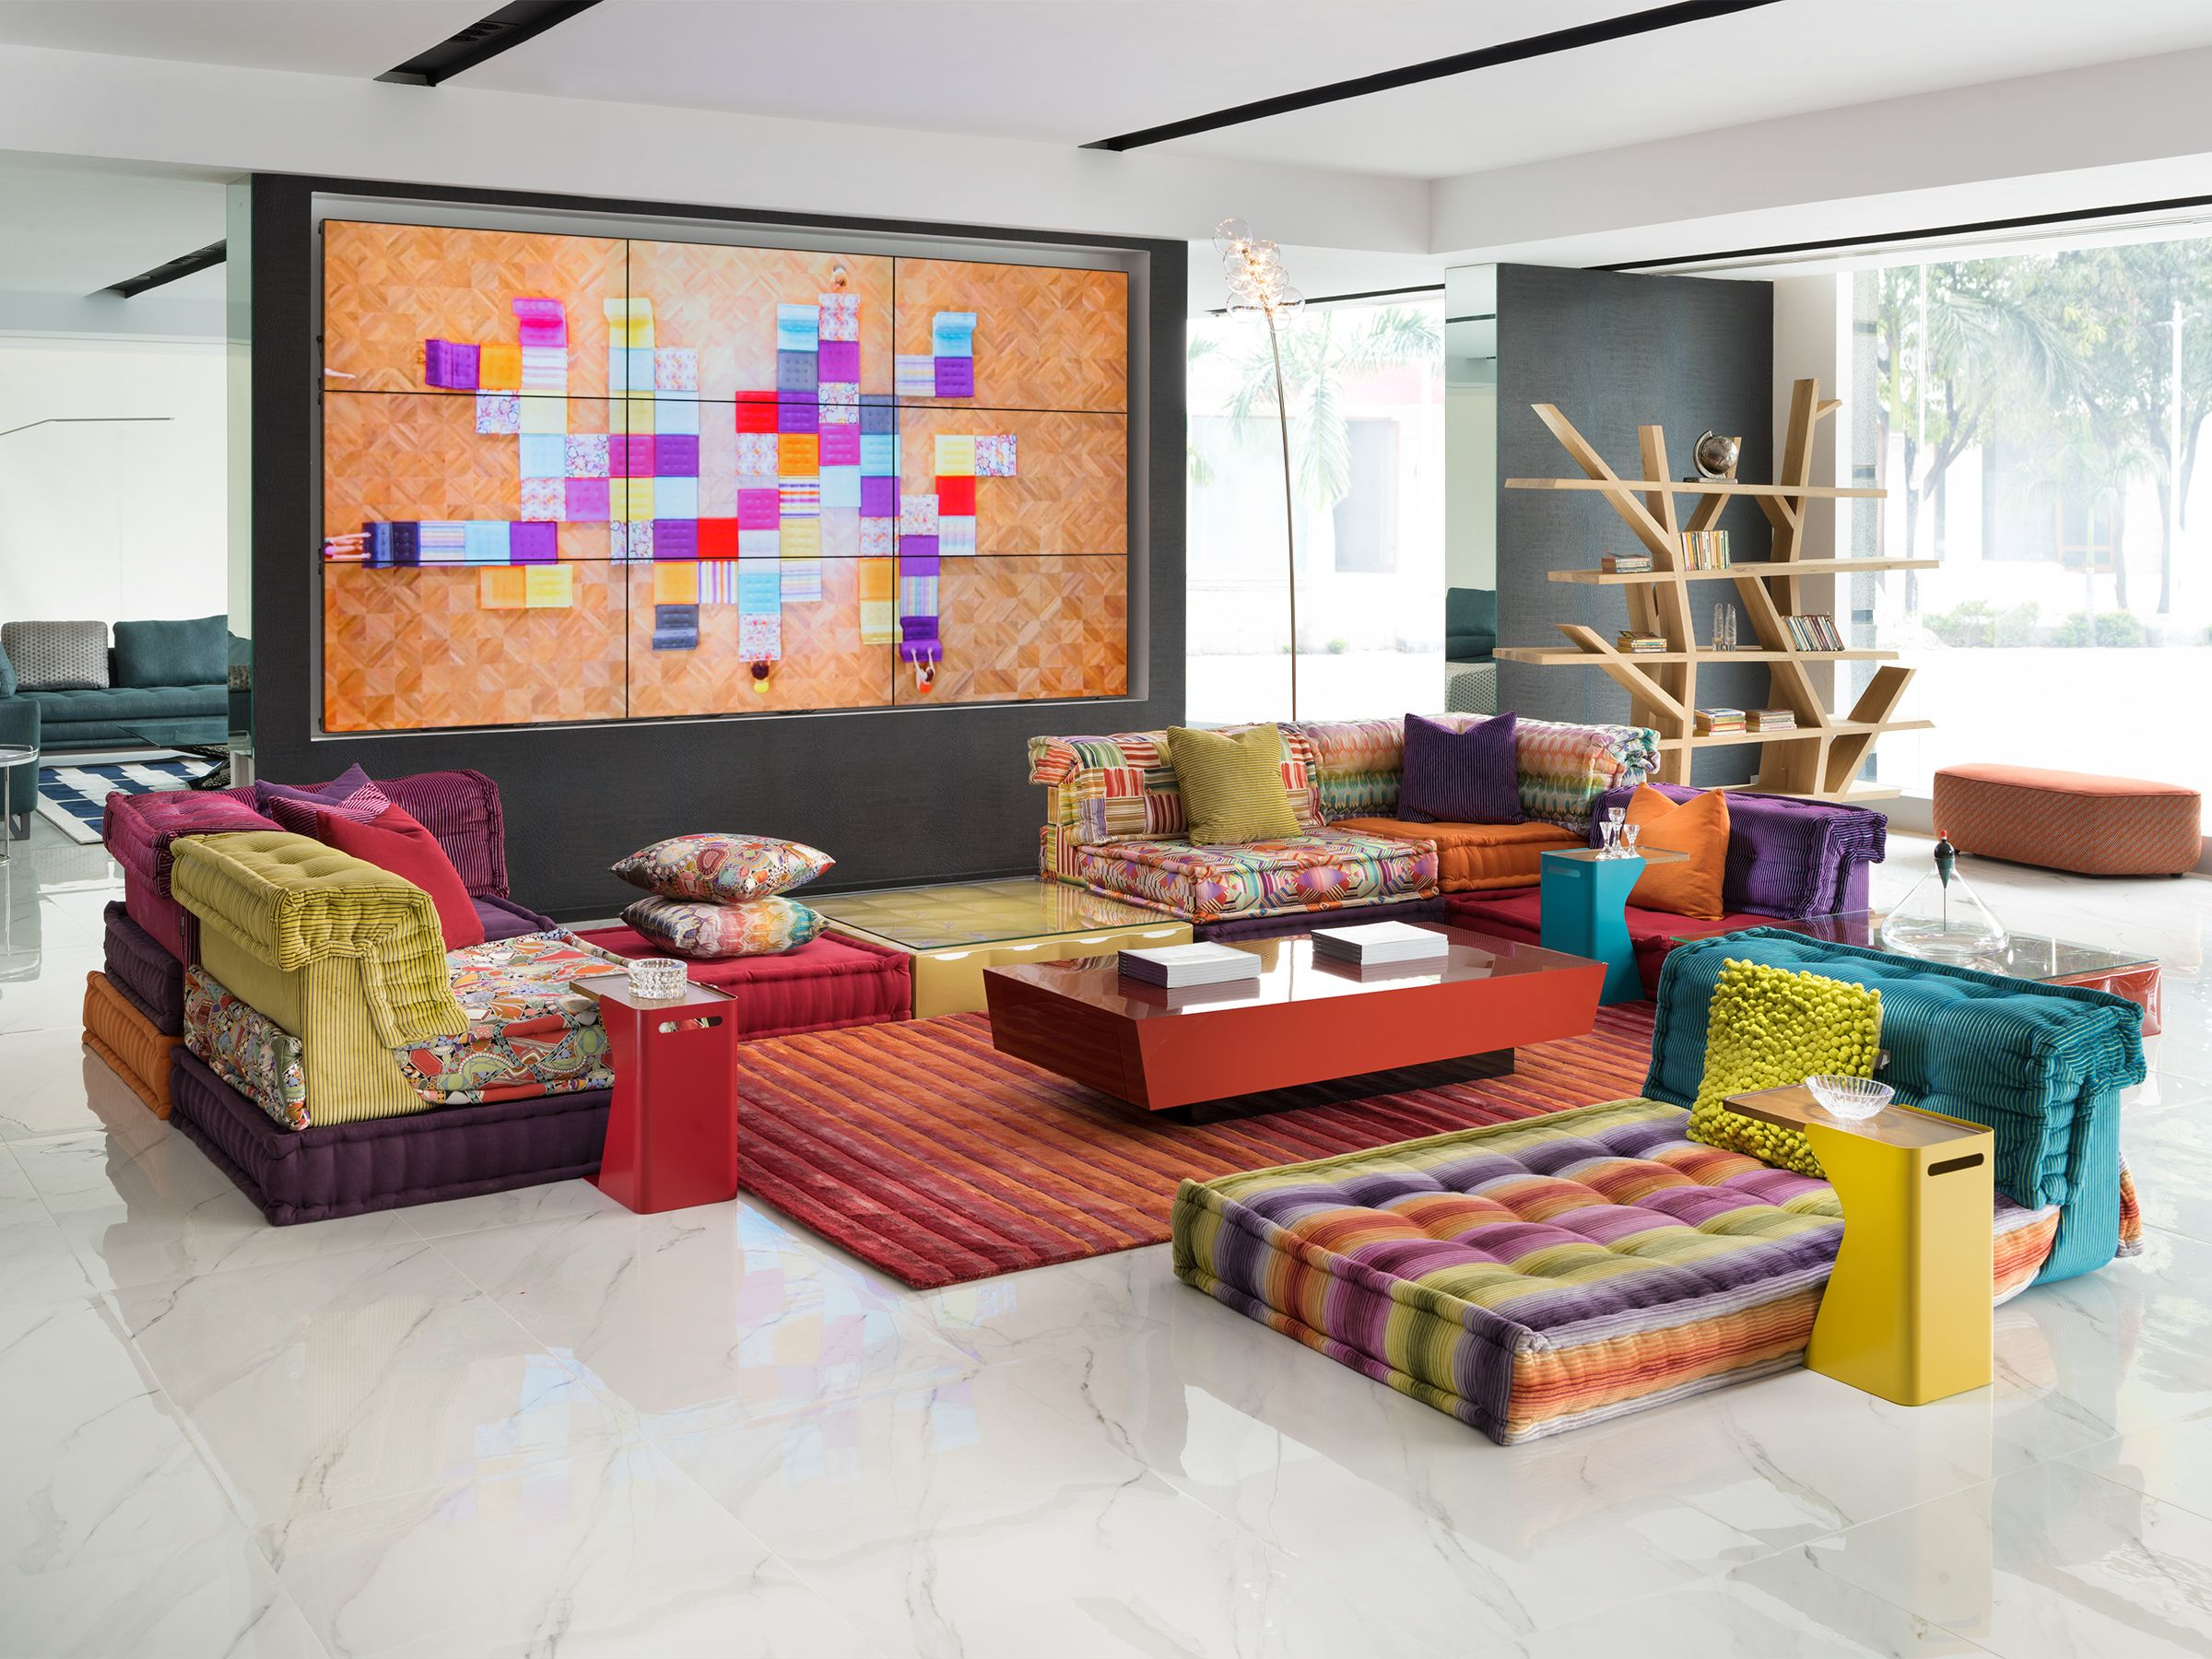 Roche Bobois New Delhi India Mah Jong Sofa Showroom Display Endustriyel Mobilya Mobilya Ev Dekorasyonu